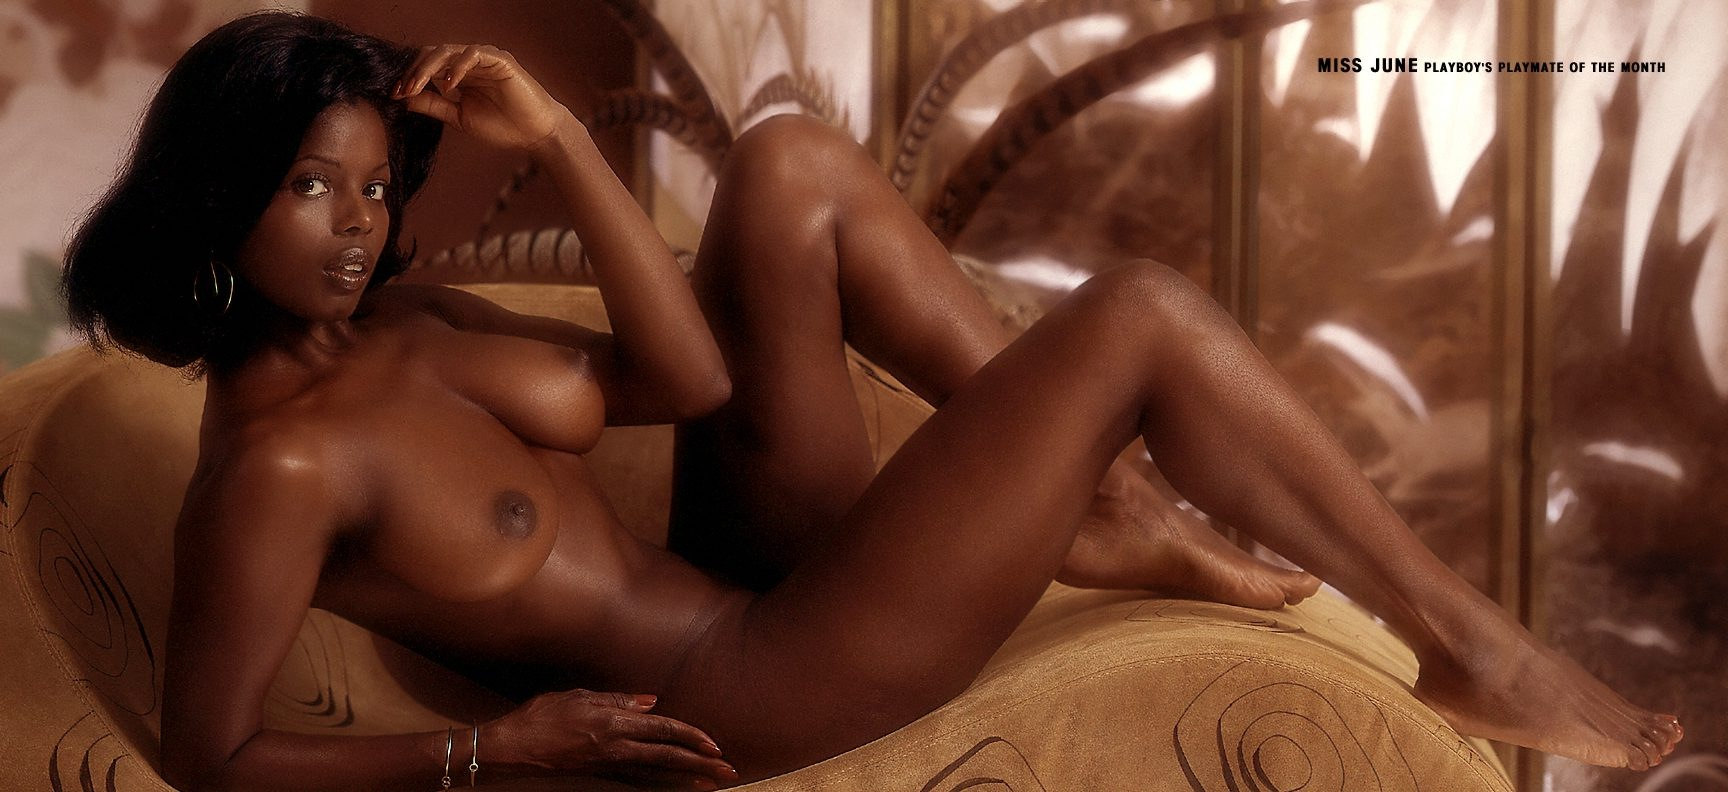 from Corey playmates nude with dildos images